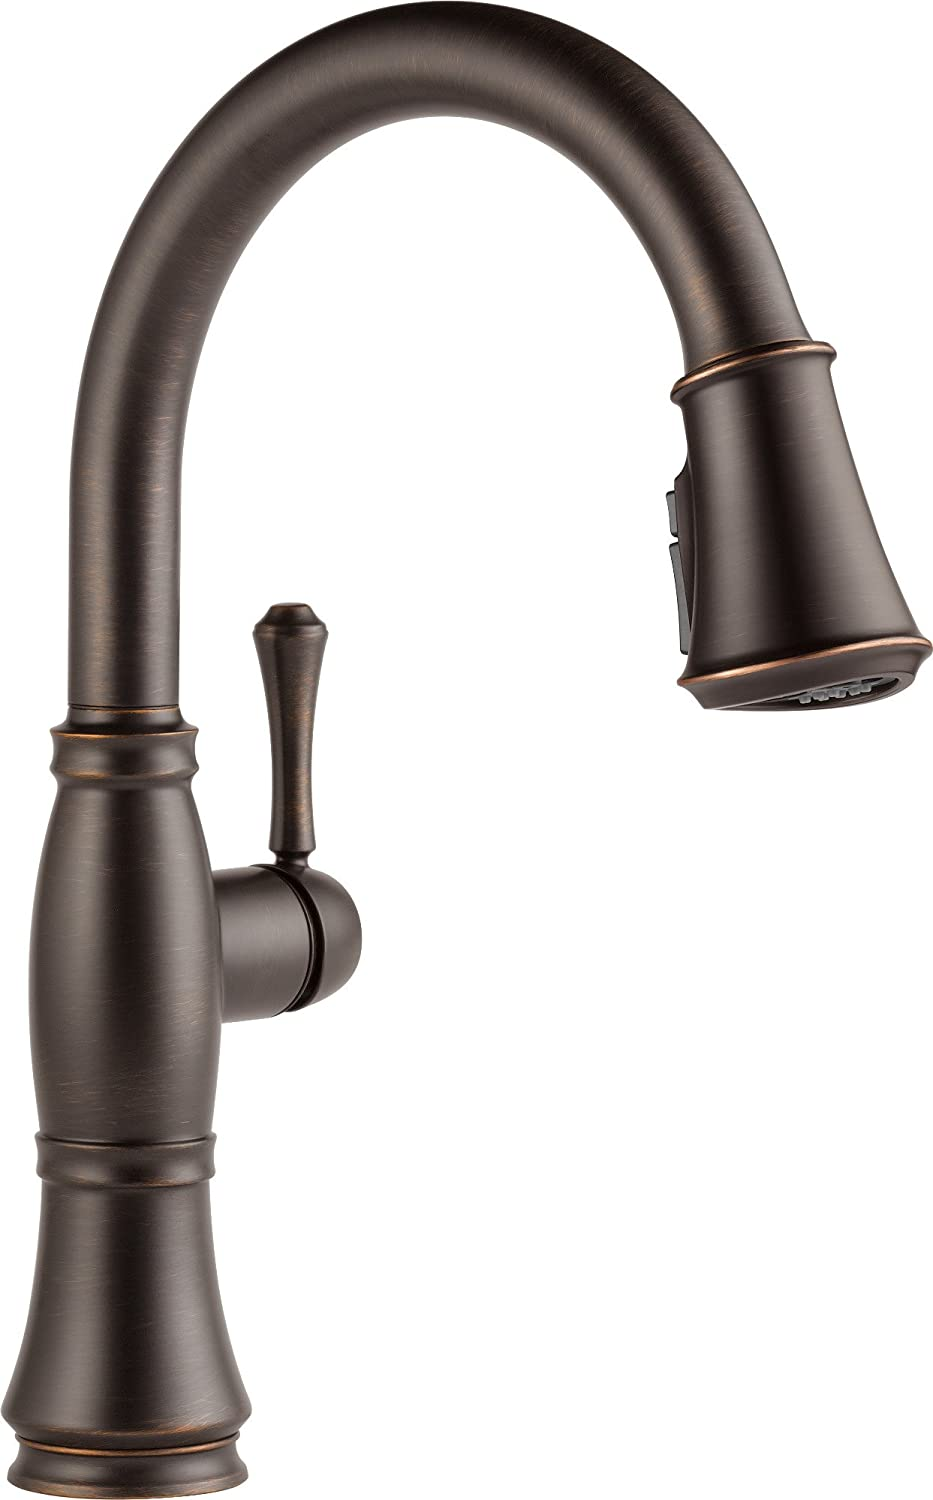 Delta Faucet Cassidy Single-Handle Kitchen Sink Faucet with Pull Down Sprayer, ShieldSpray Technology and Magnetic Docking Spray Head, Venetian Bronze 9197-RB-DST